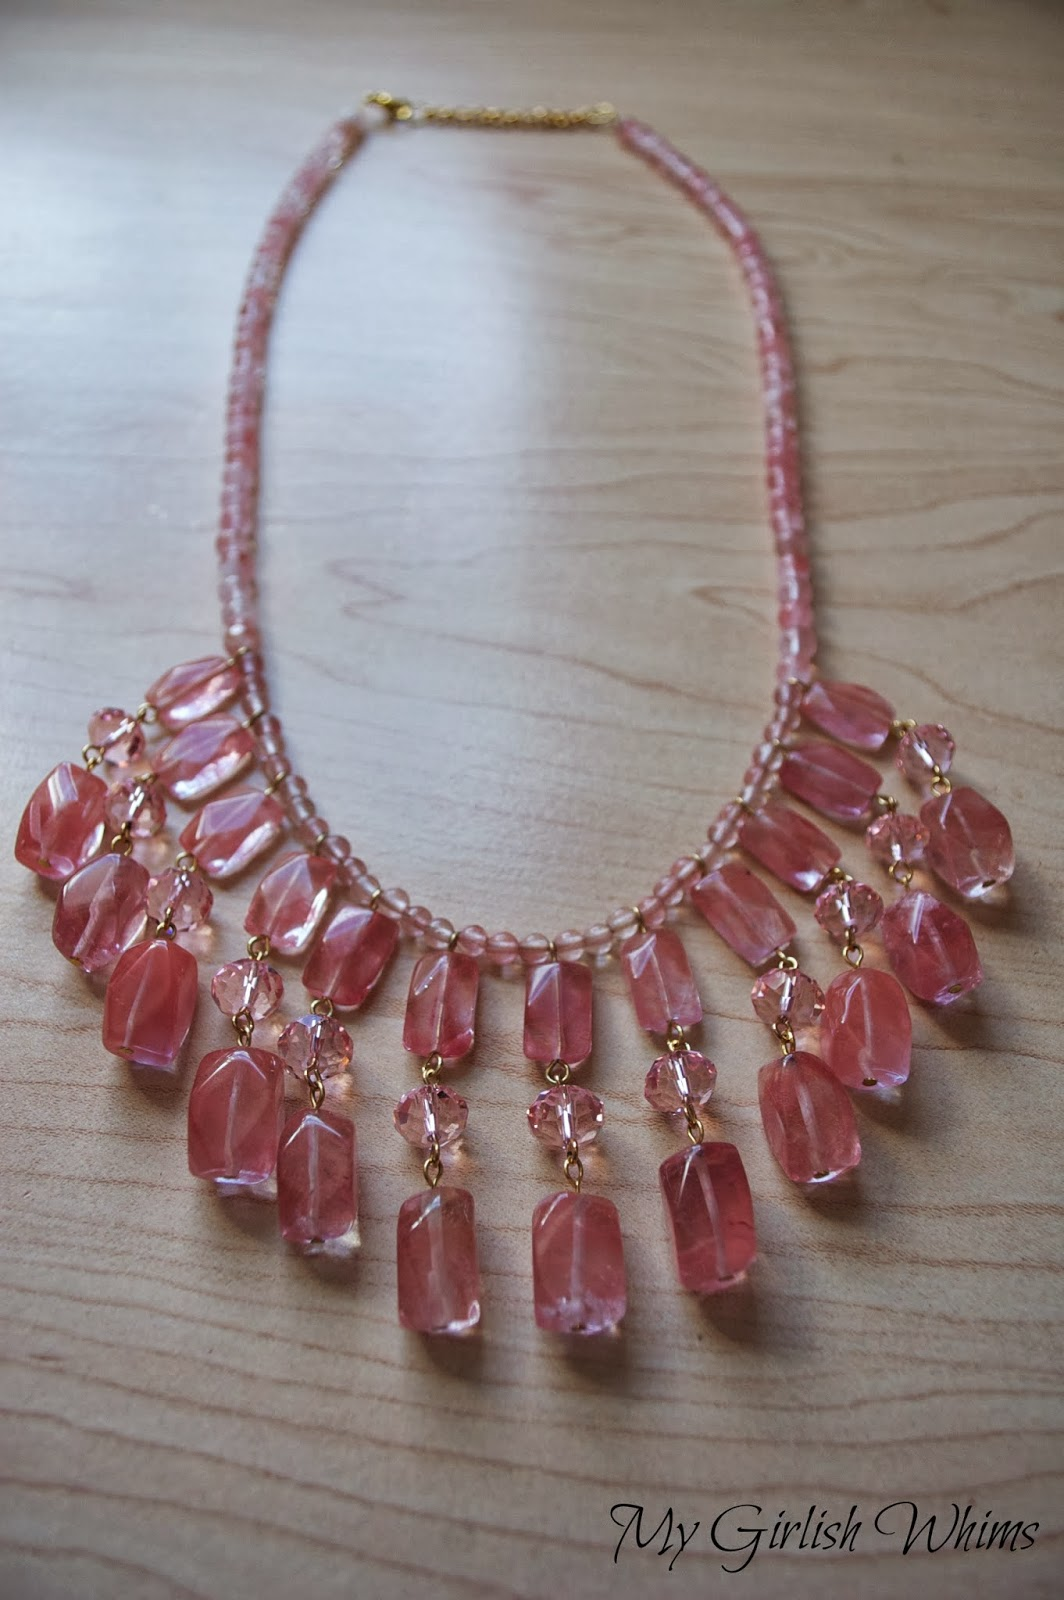 DIY Beaded Dangle Necklace - My Girlish Whims